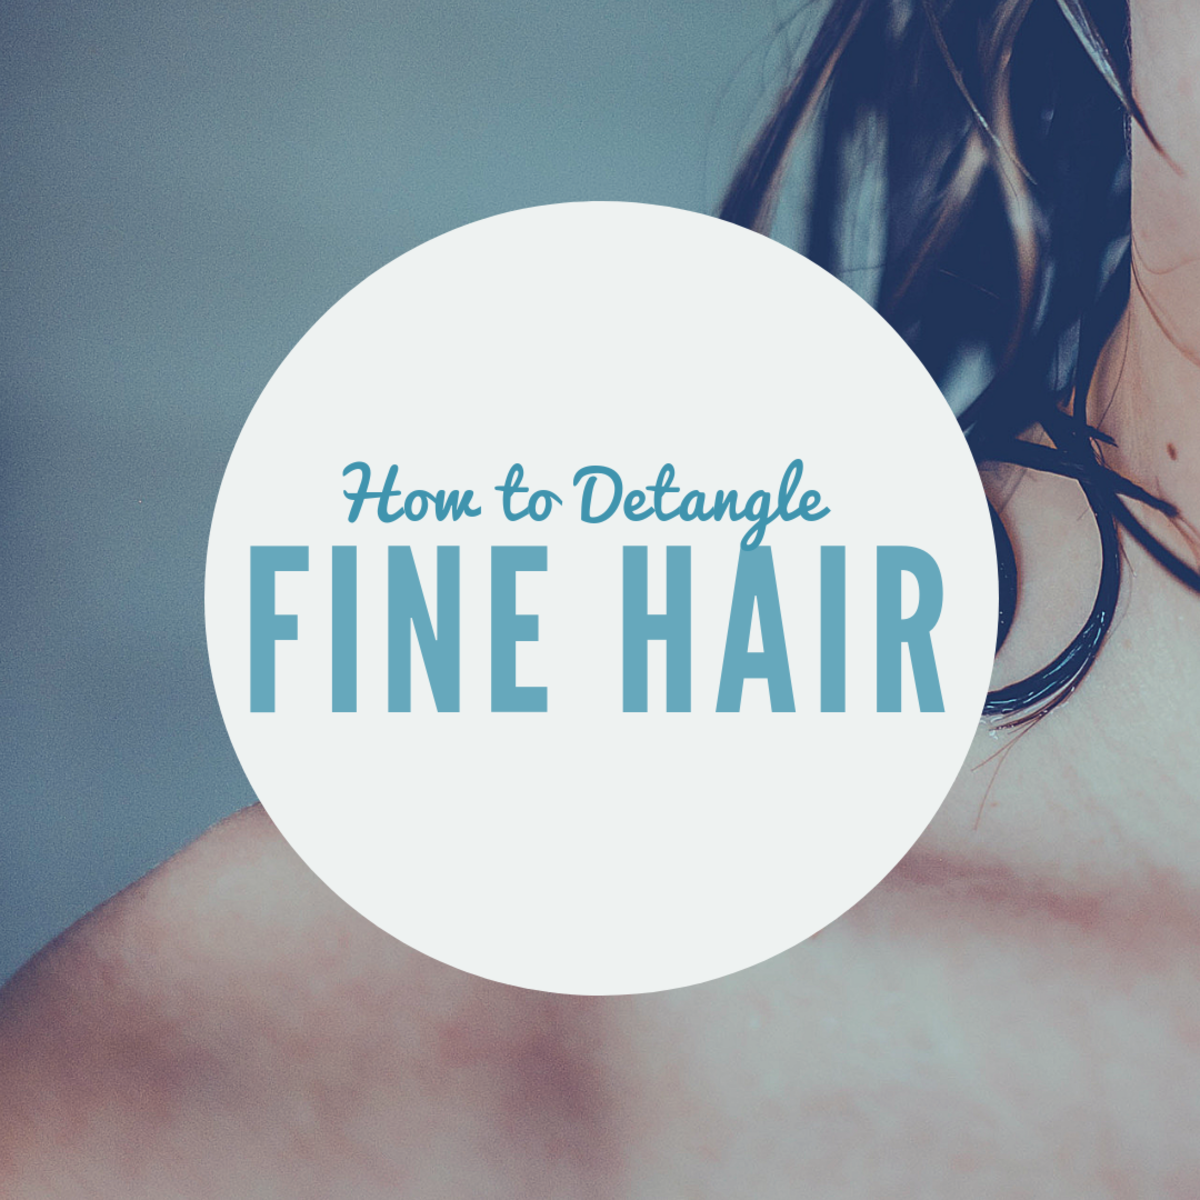 Tips and tricks for detangling fine hair from someone with fine hair.